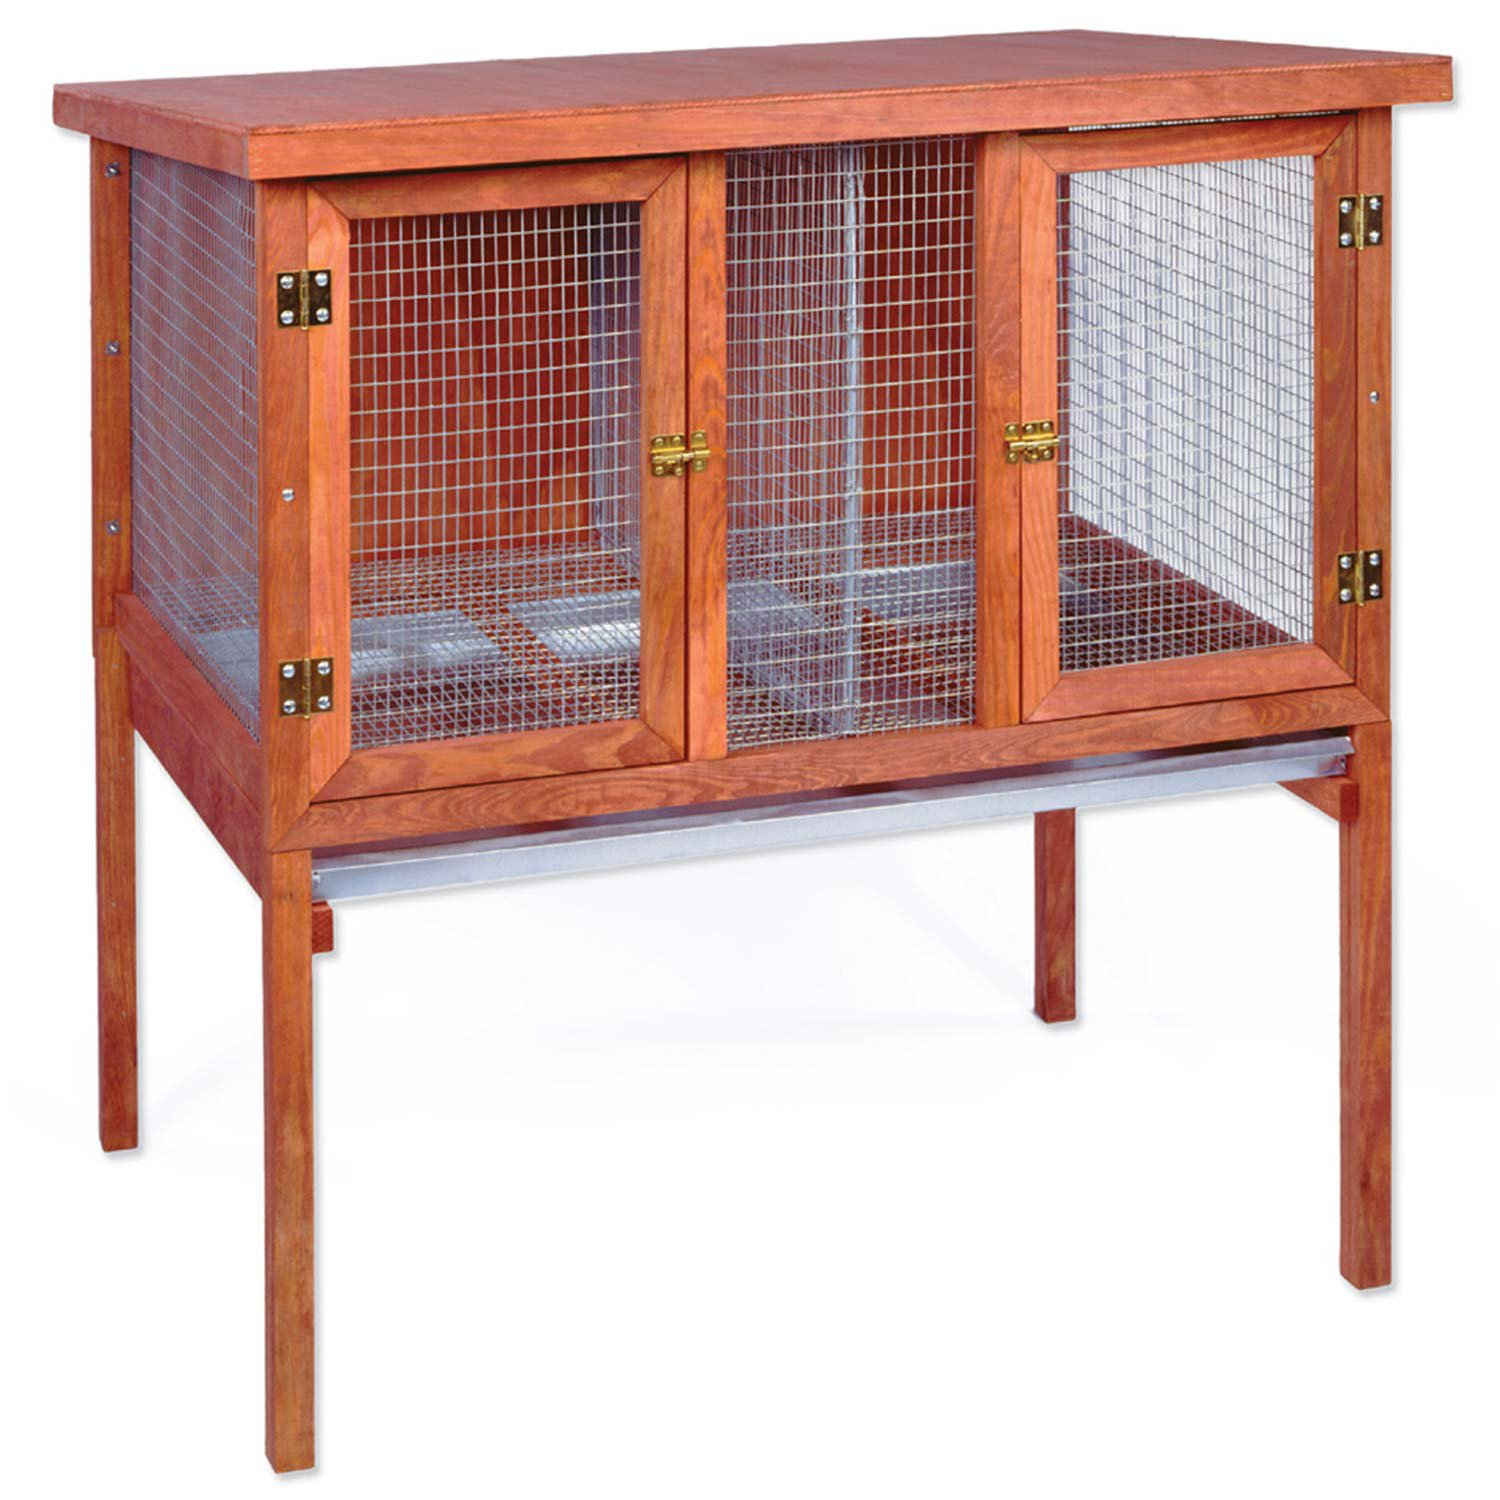 Ware hd double rabbit hutch petco for What is a rabbit hutch